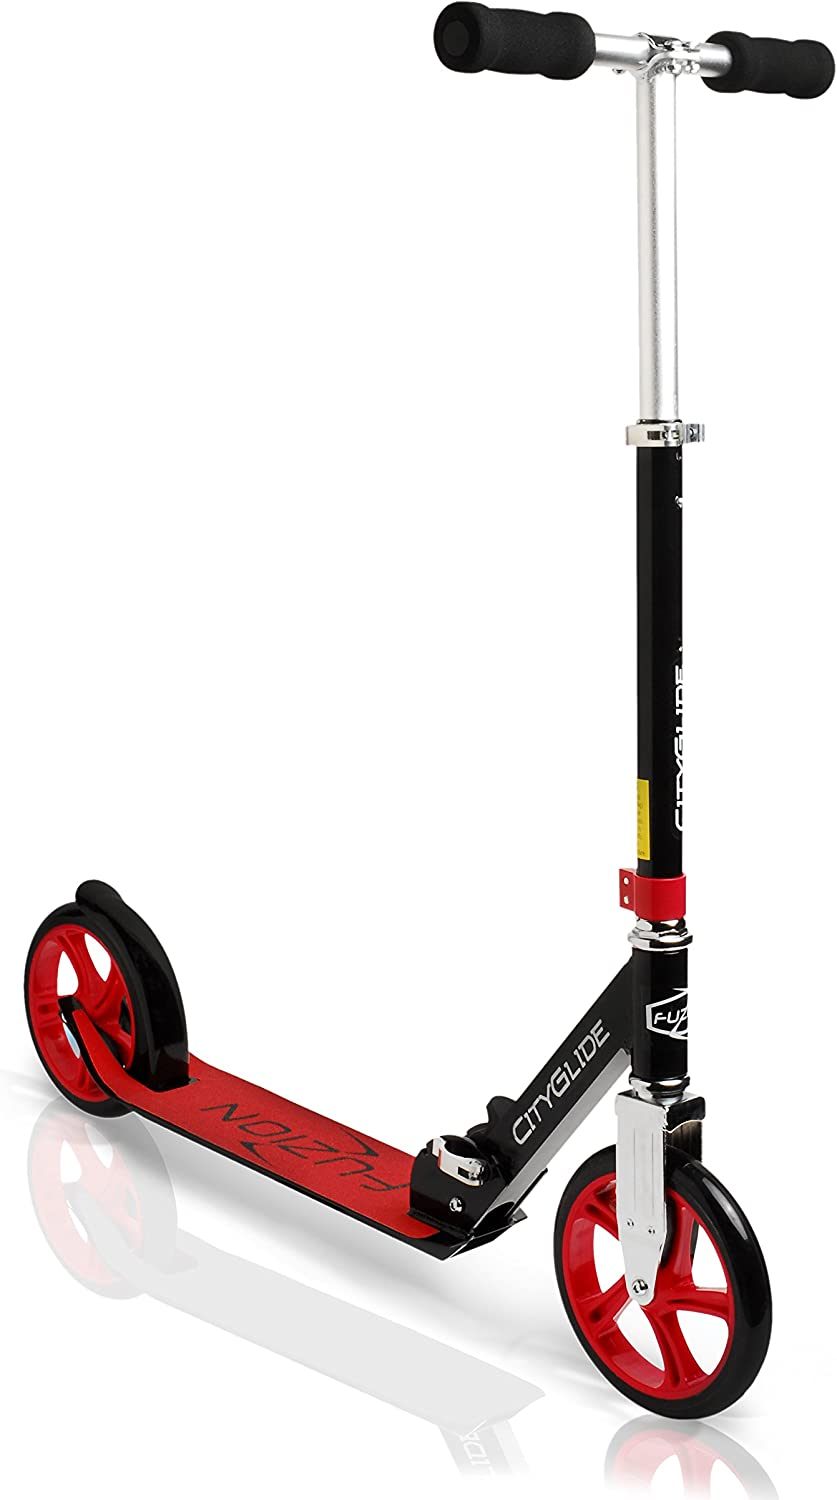 Fuzion Cityglide Adult Kick Scooter – Smooth, Pro Push Urban Scooters for Adults, Commuter Scooters, City Scooters – Folding Scooter and Adjustable T-Bar – Big Kids, Boys and Girls Max 220lbs